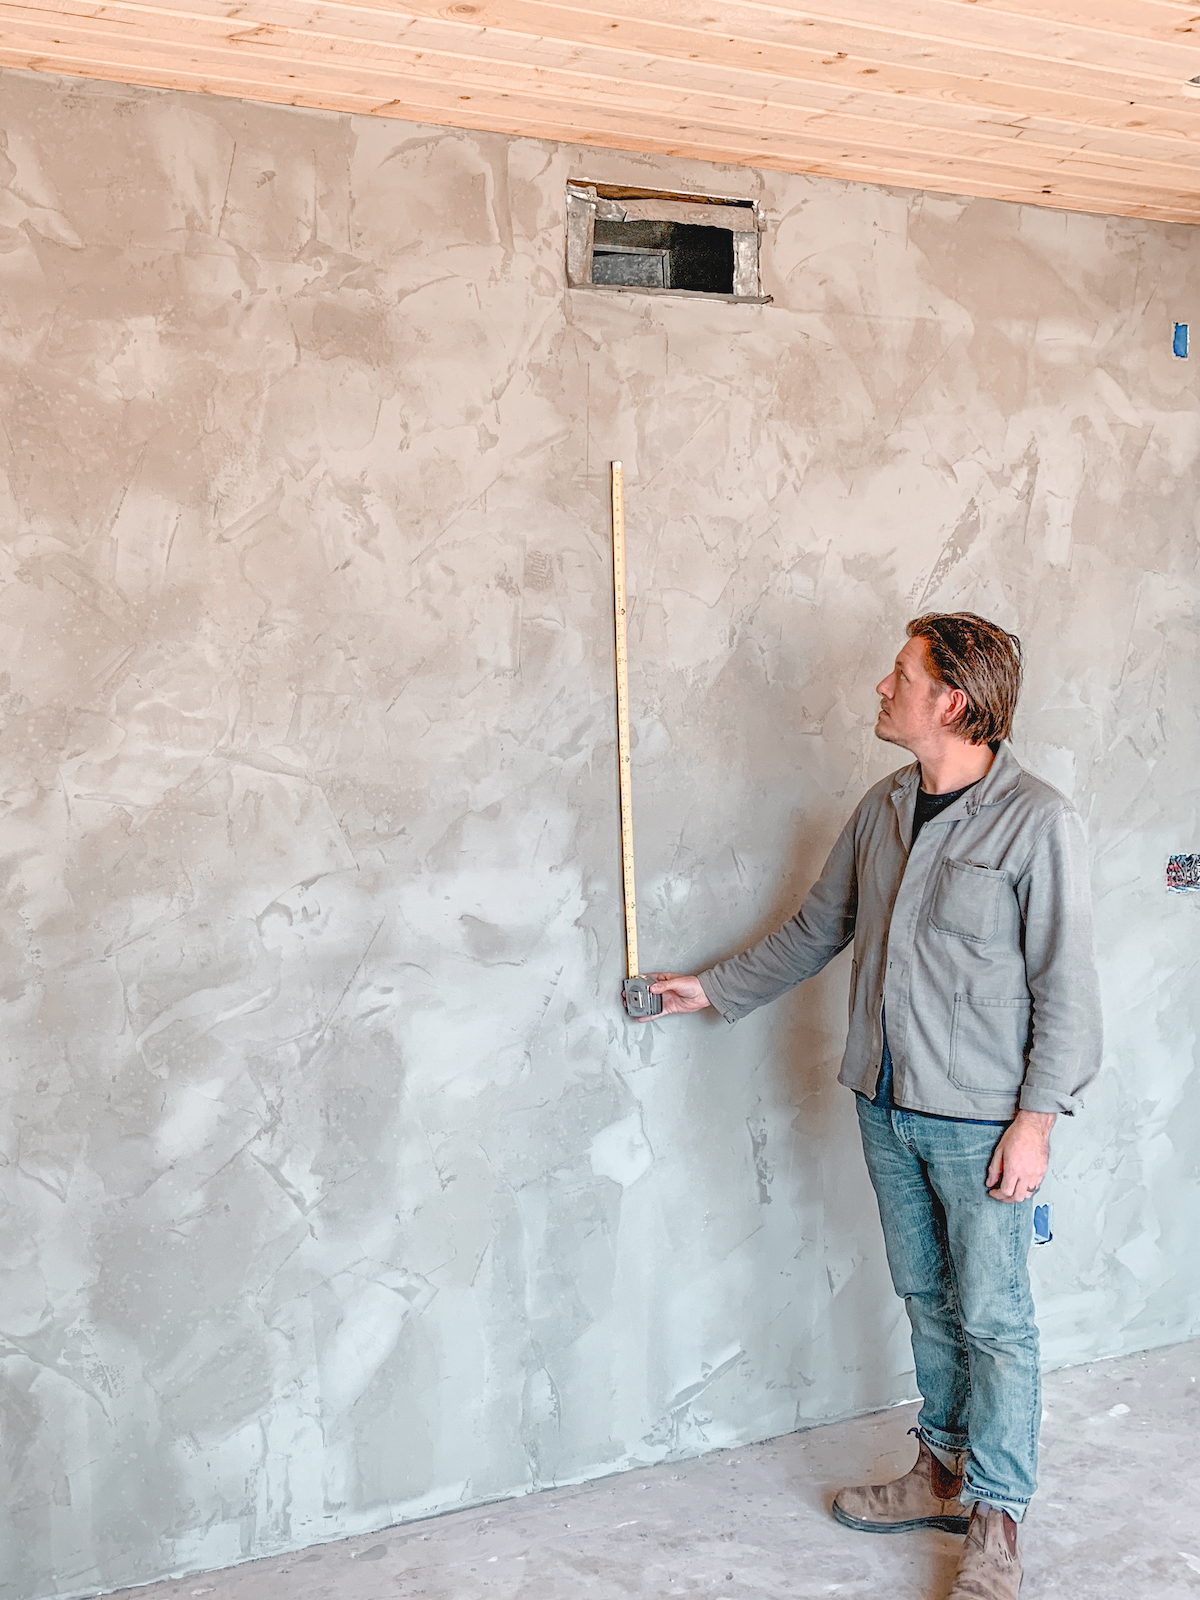 Rich holding a tape measurer up against the wall of a room in the middle of renovation